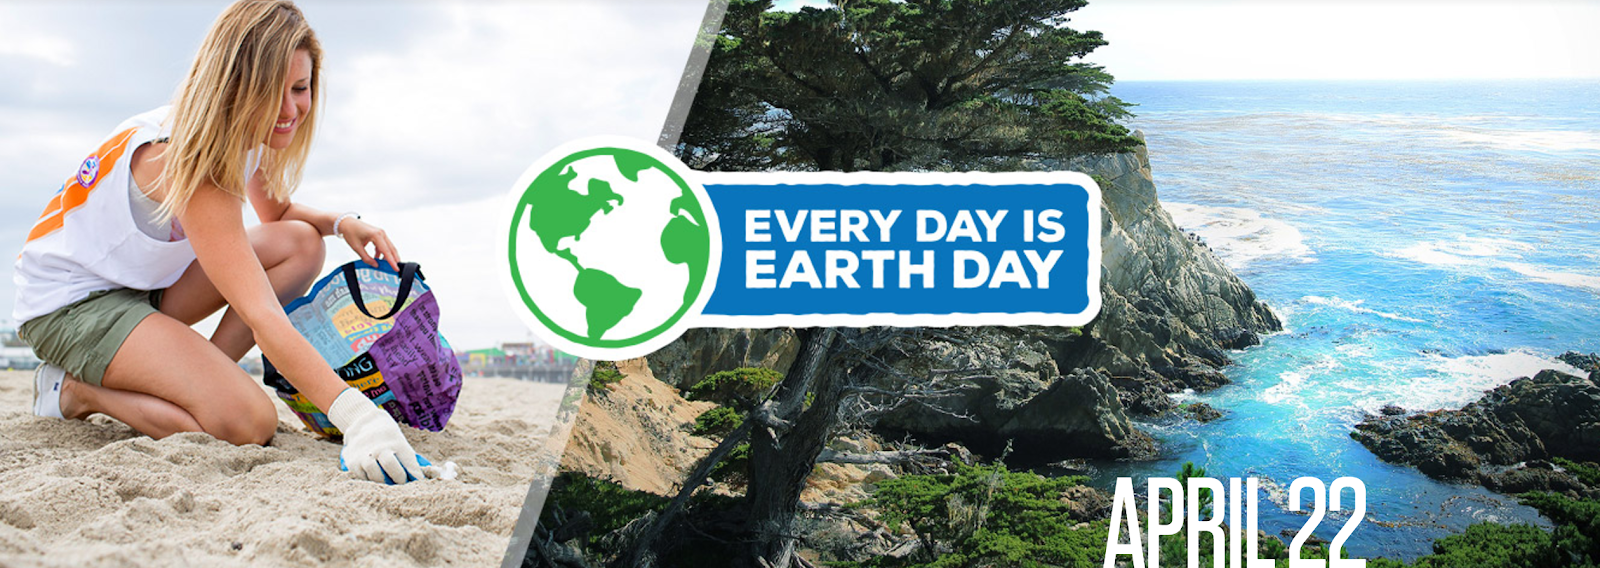 11 Free Earth Day Events in Los Angeles #EarthDayLA - Surfrider Los Angeles Beach Clean Up Santa Monica